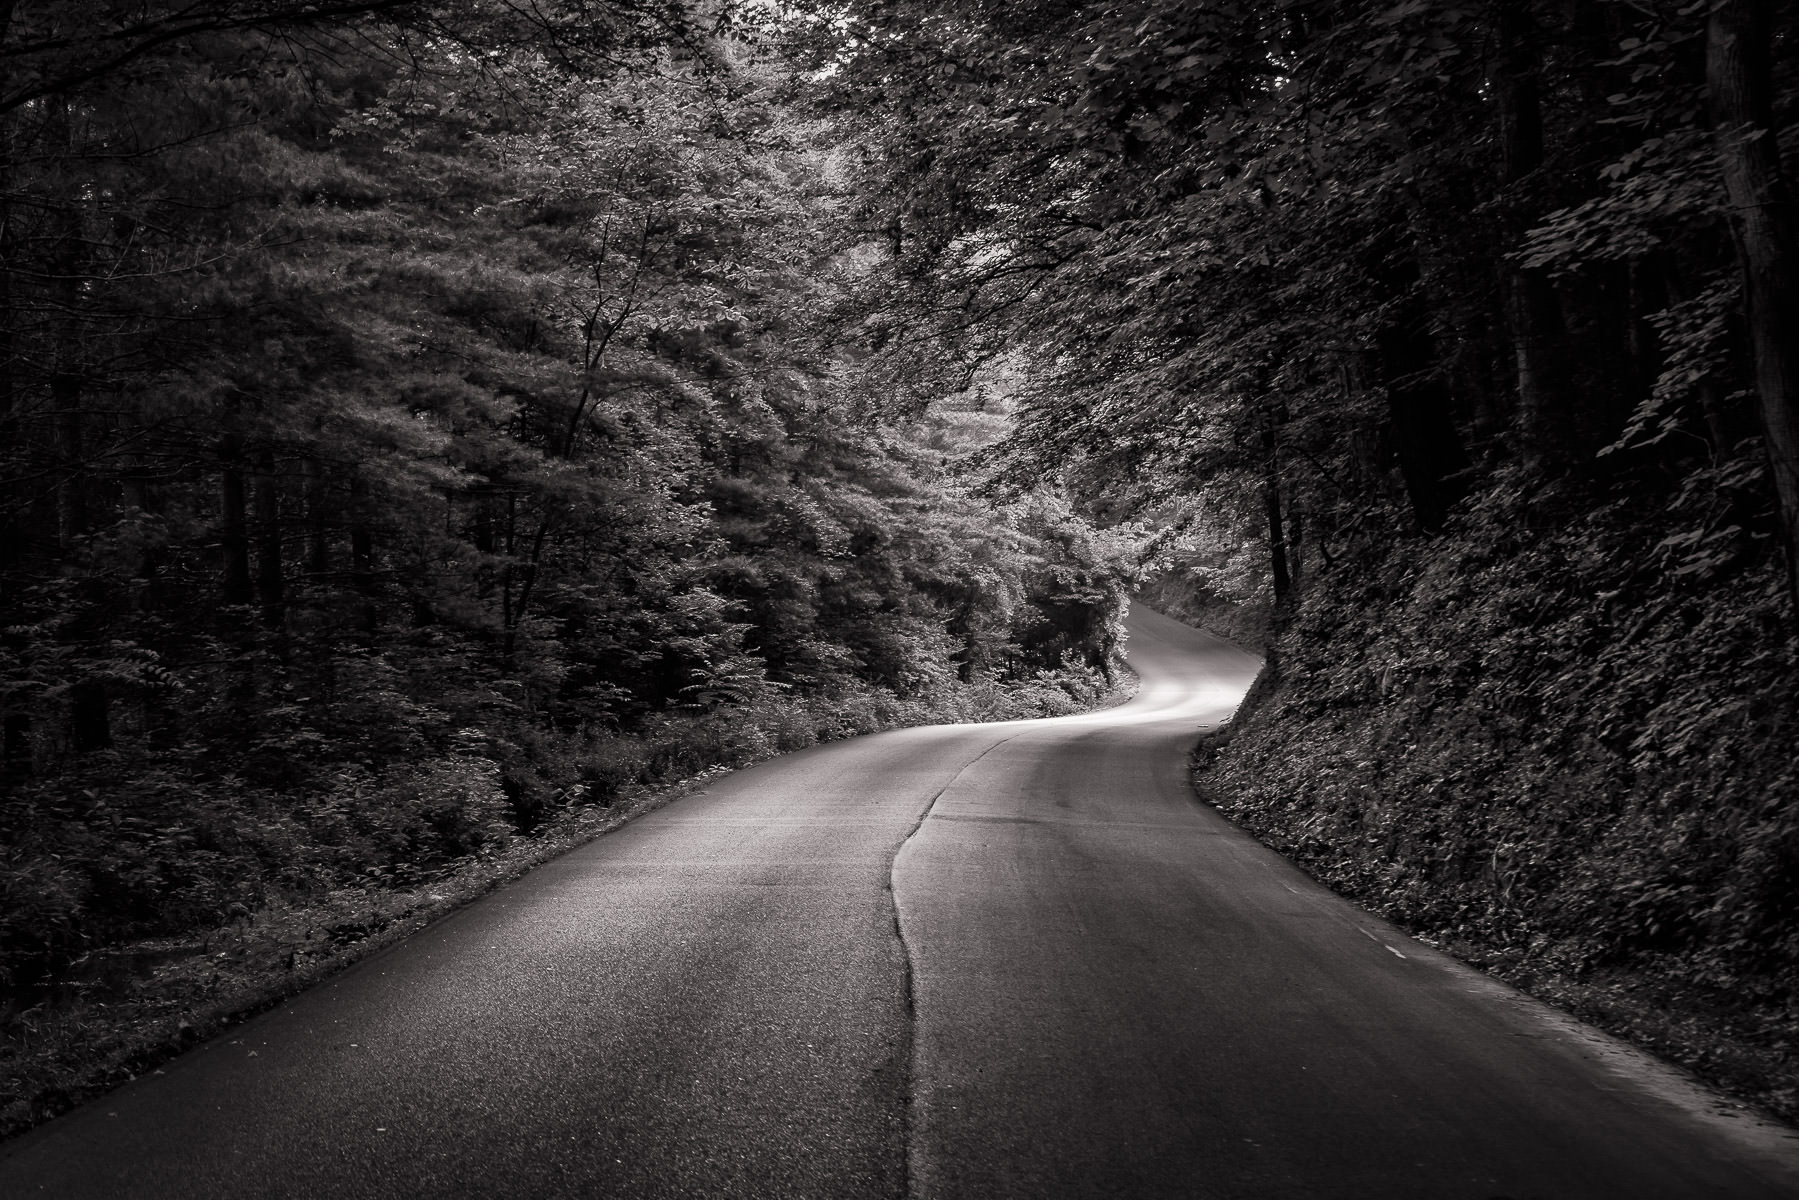 A road winds through the Tennessee forest near Pigeon Forge.